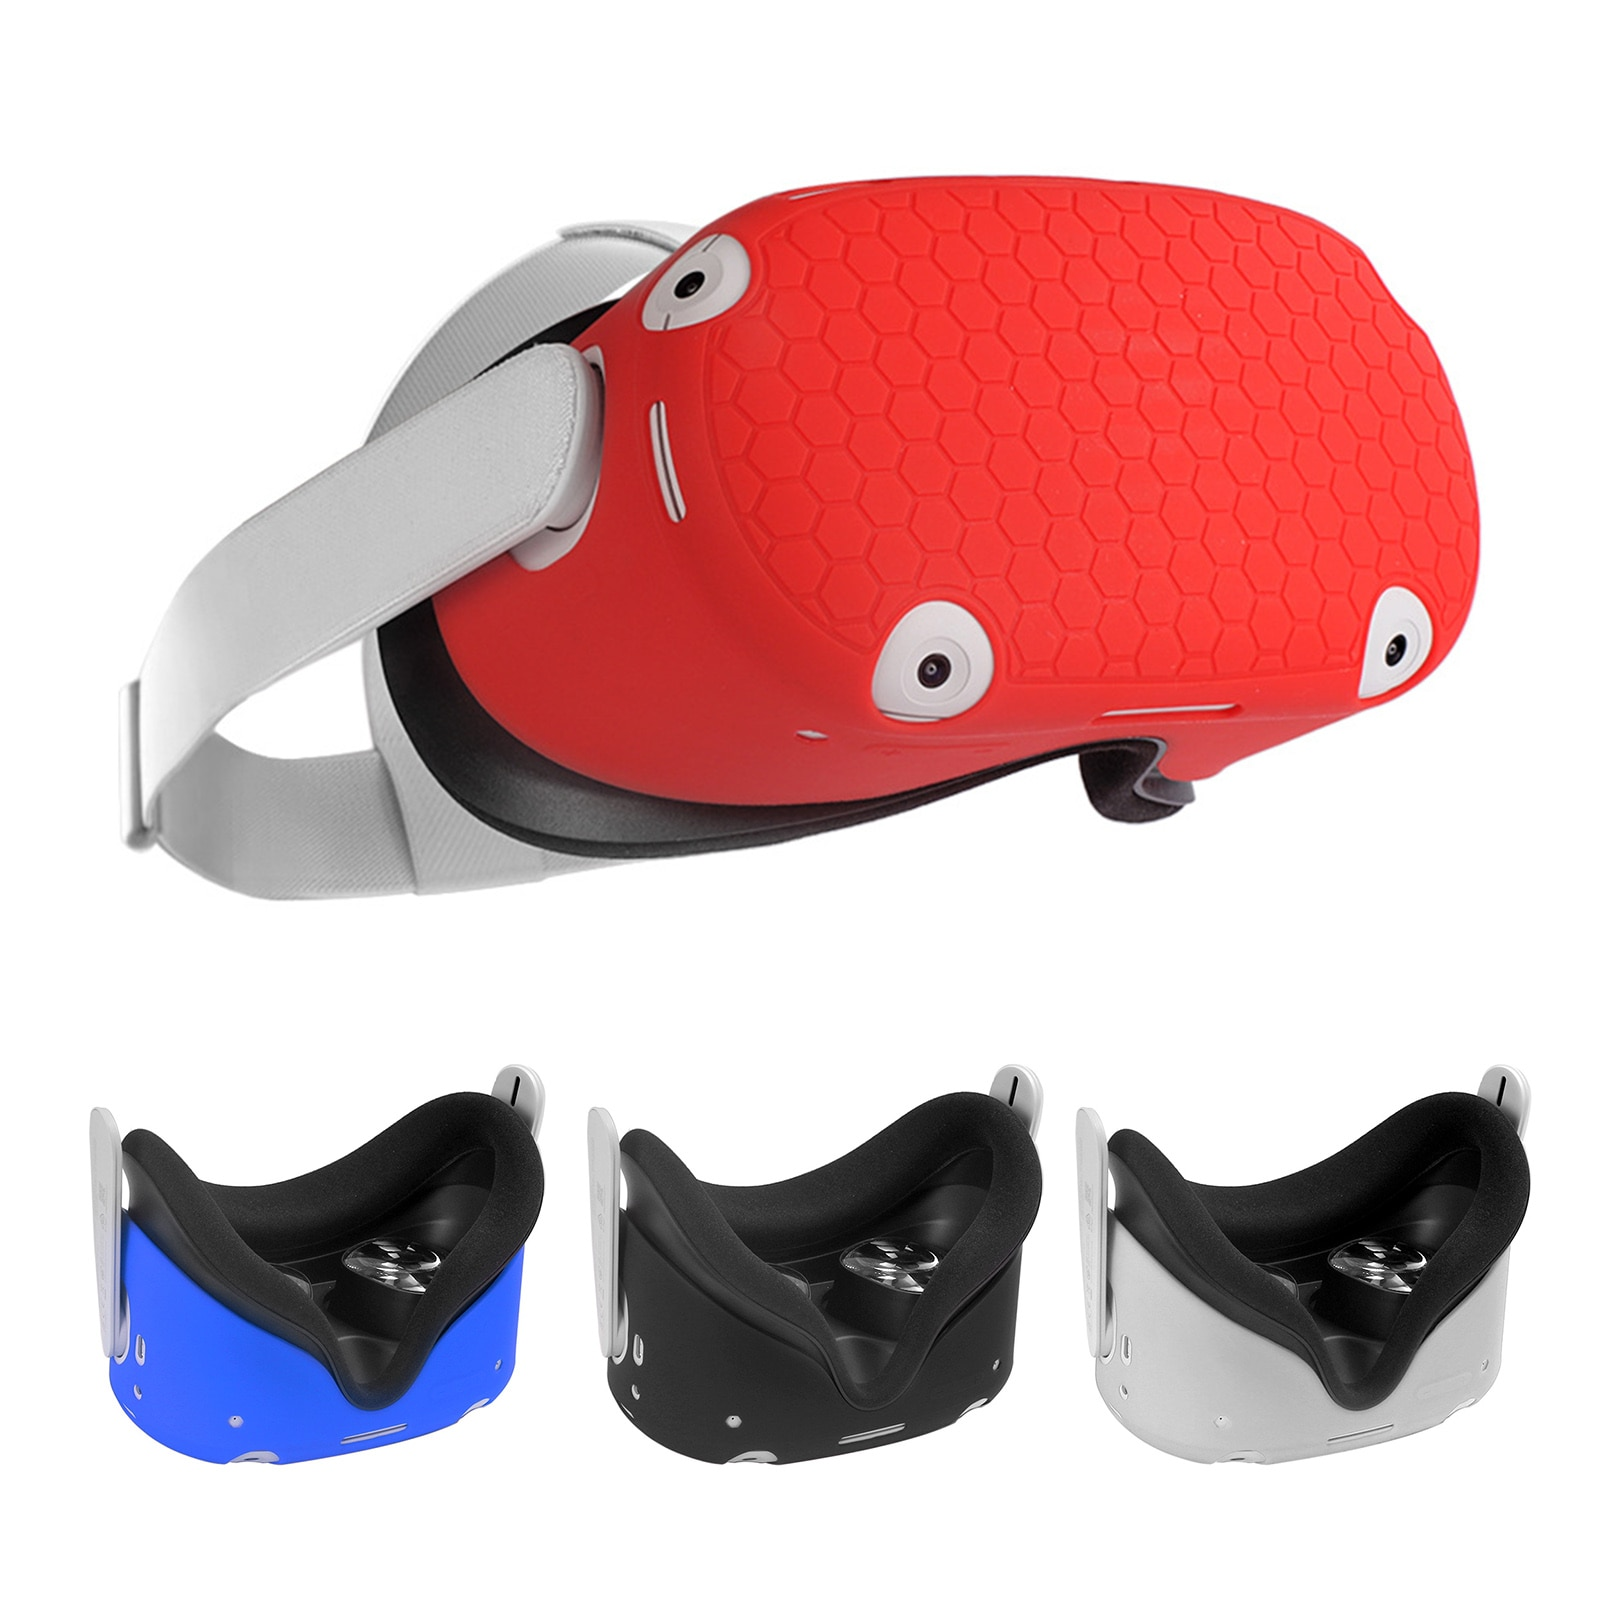 Silicone Protective Cover Shell Case For Oculus Quest 2 VR Headset Head Cover Anti-Scratches For Ocu